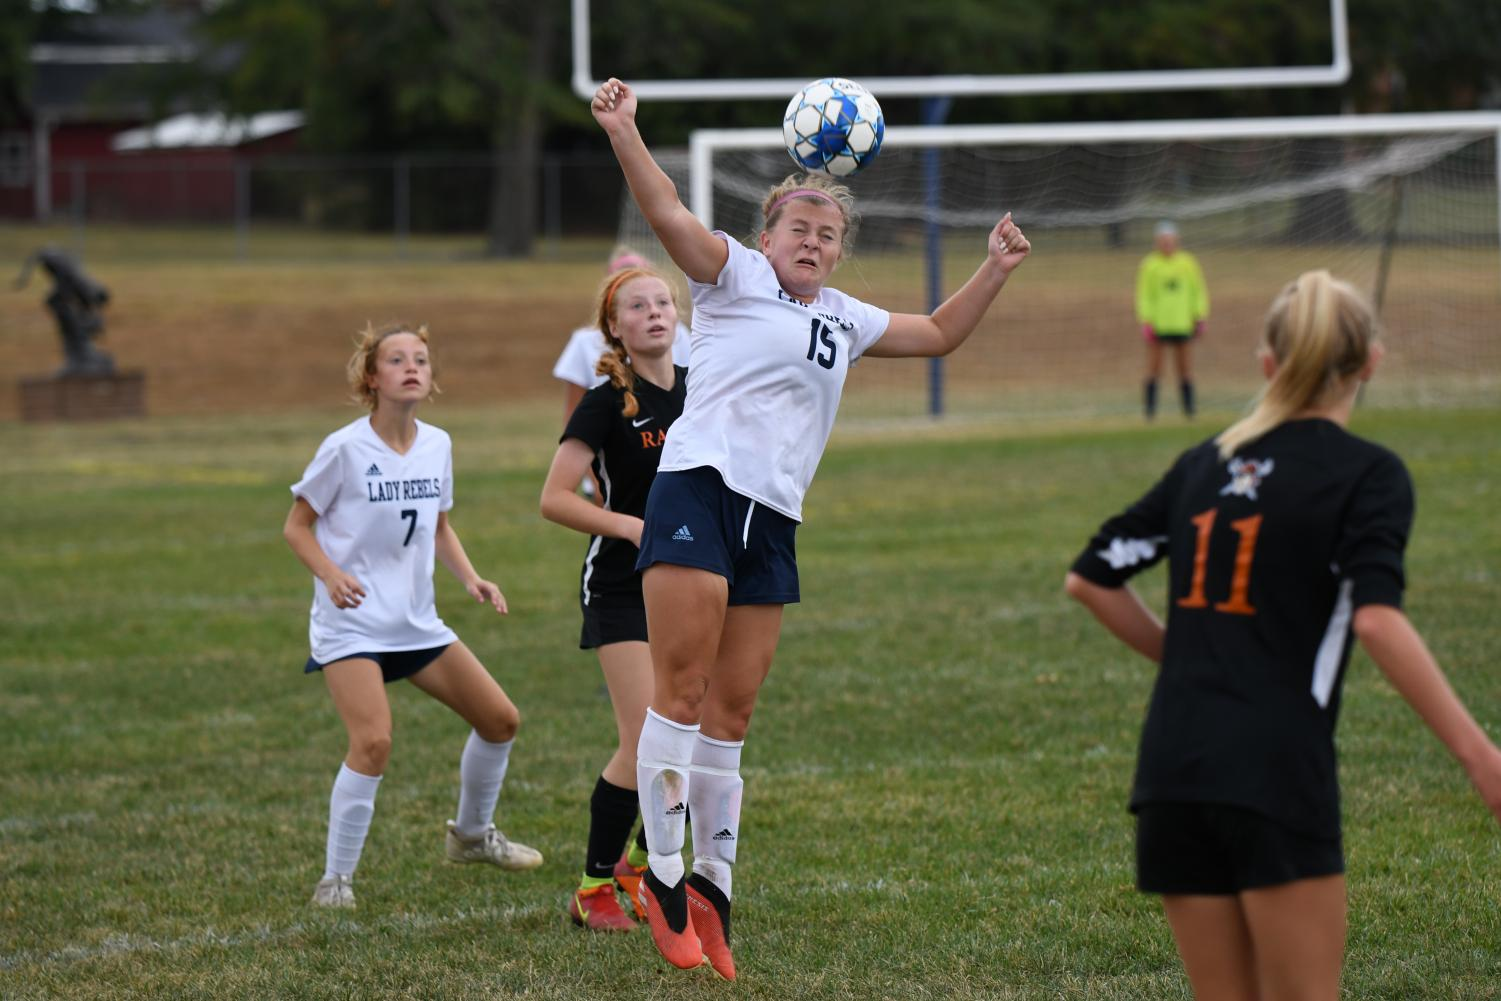 Junior Maddy Hobbs jumps up and hits the ball with her head, during the district soccer game at Conner high school on Oct. 6.